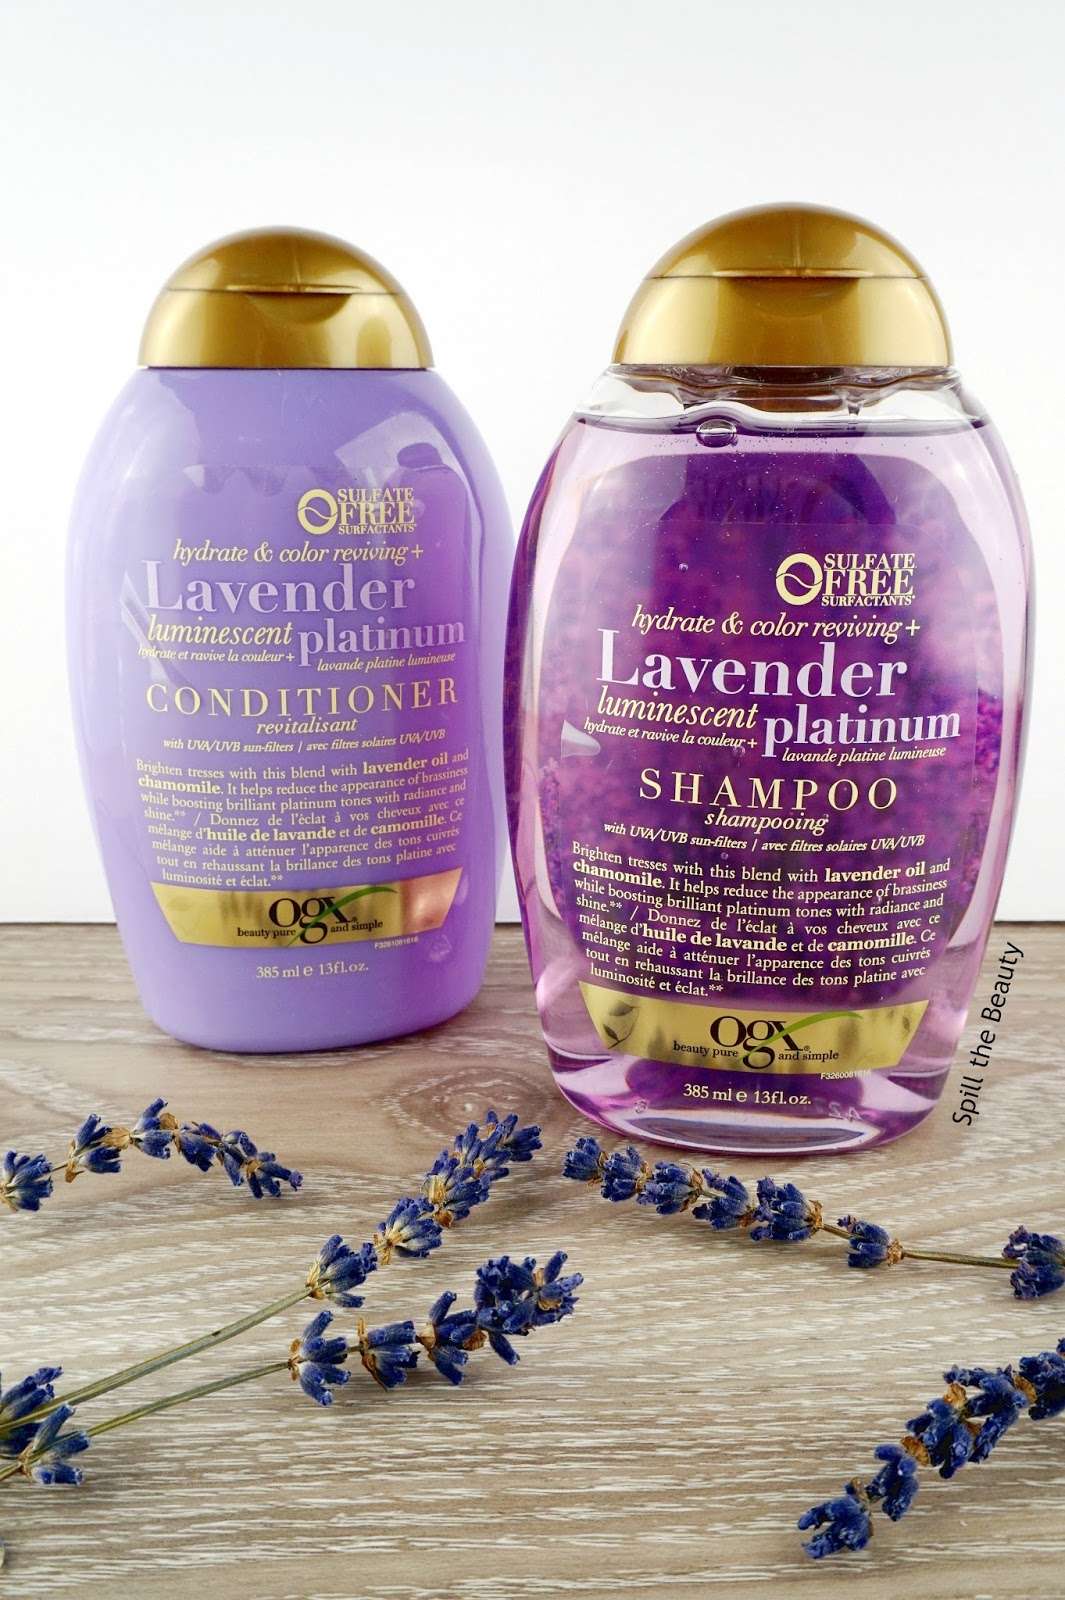 OGX Lavender Luminescent Platinum Shampoo & Conditioner – Review